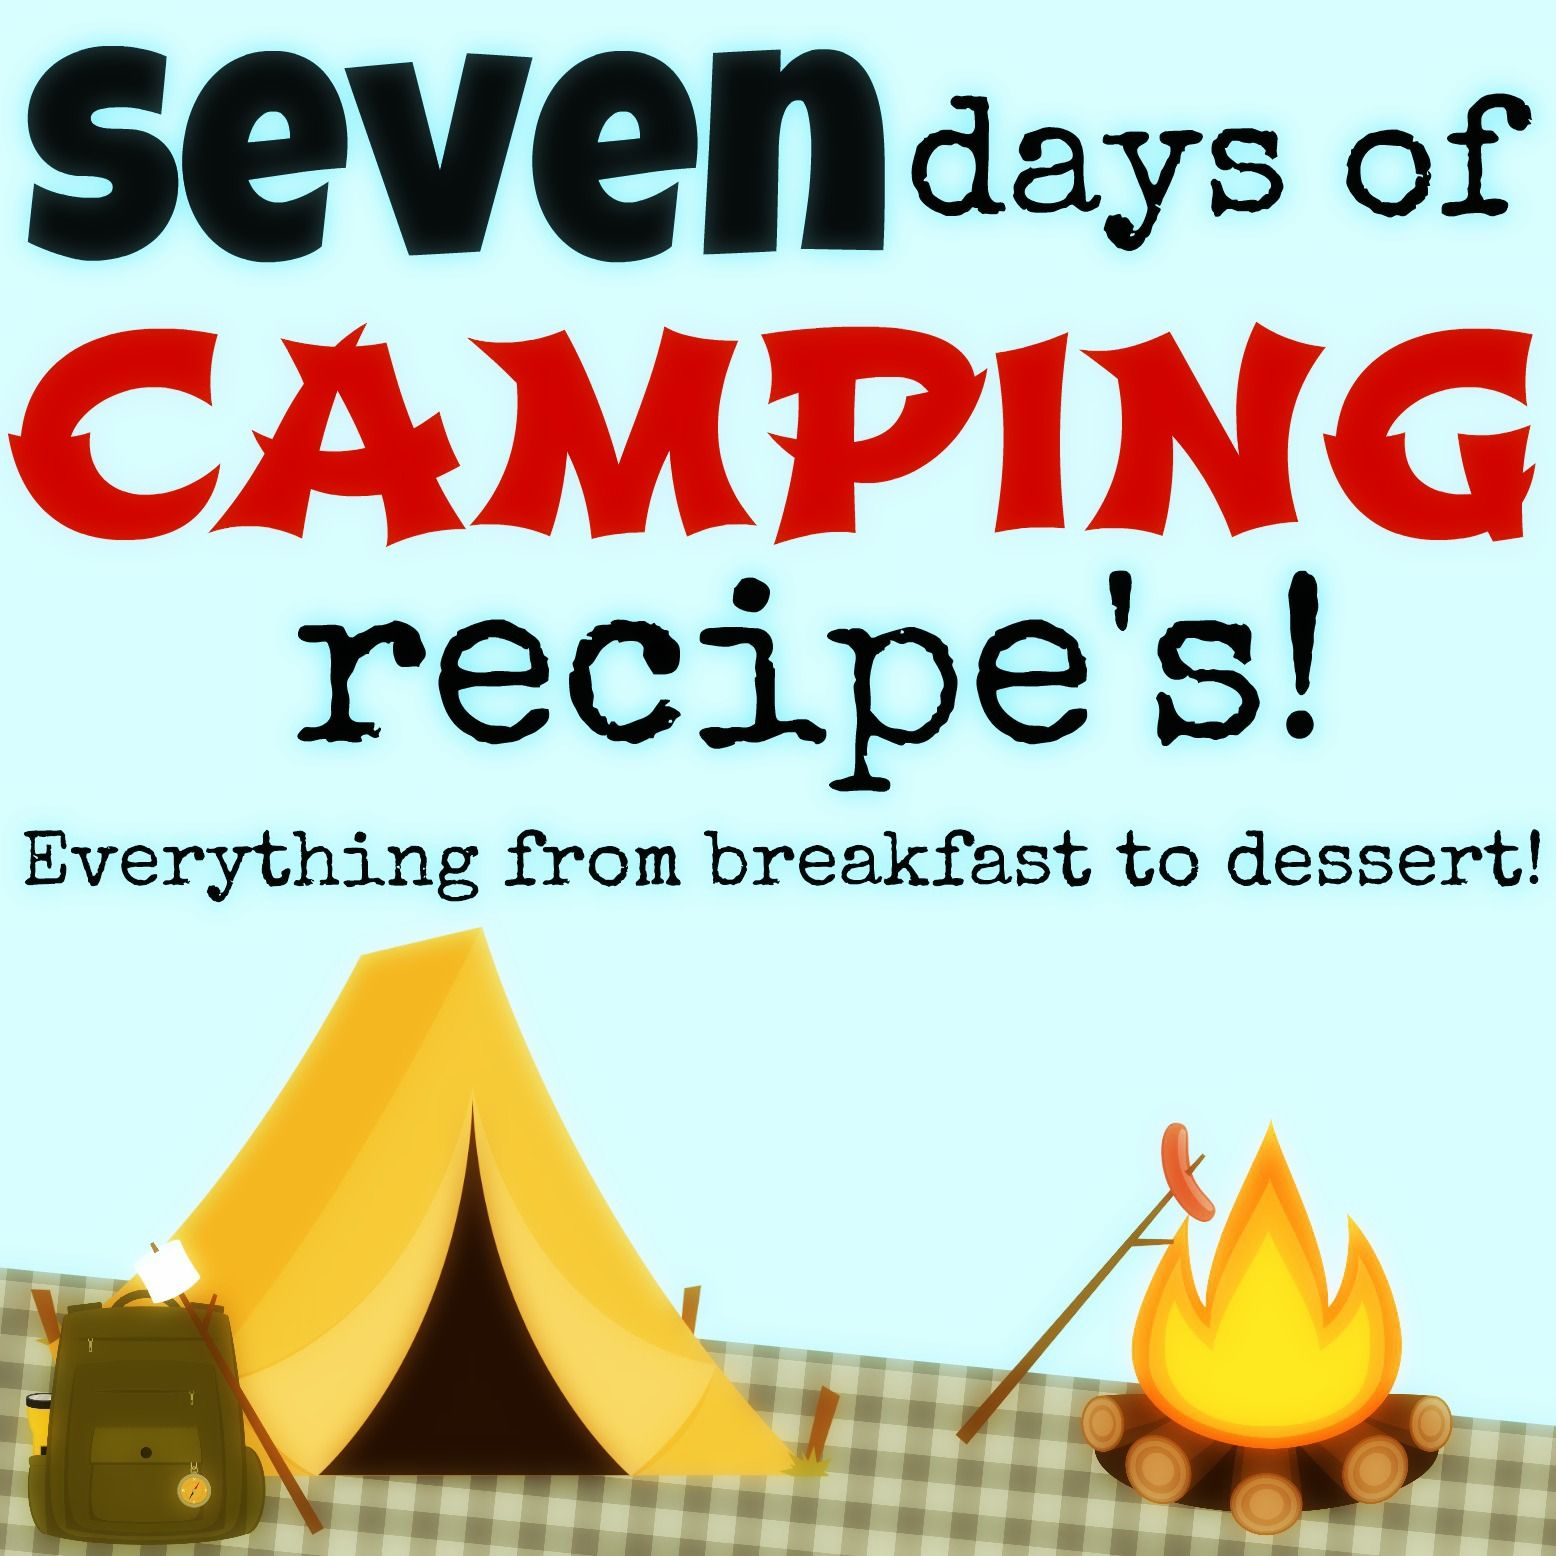 7 days of camping recipe\'s. Just in case there\'s that slim chance I ...